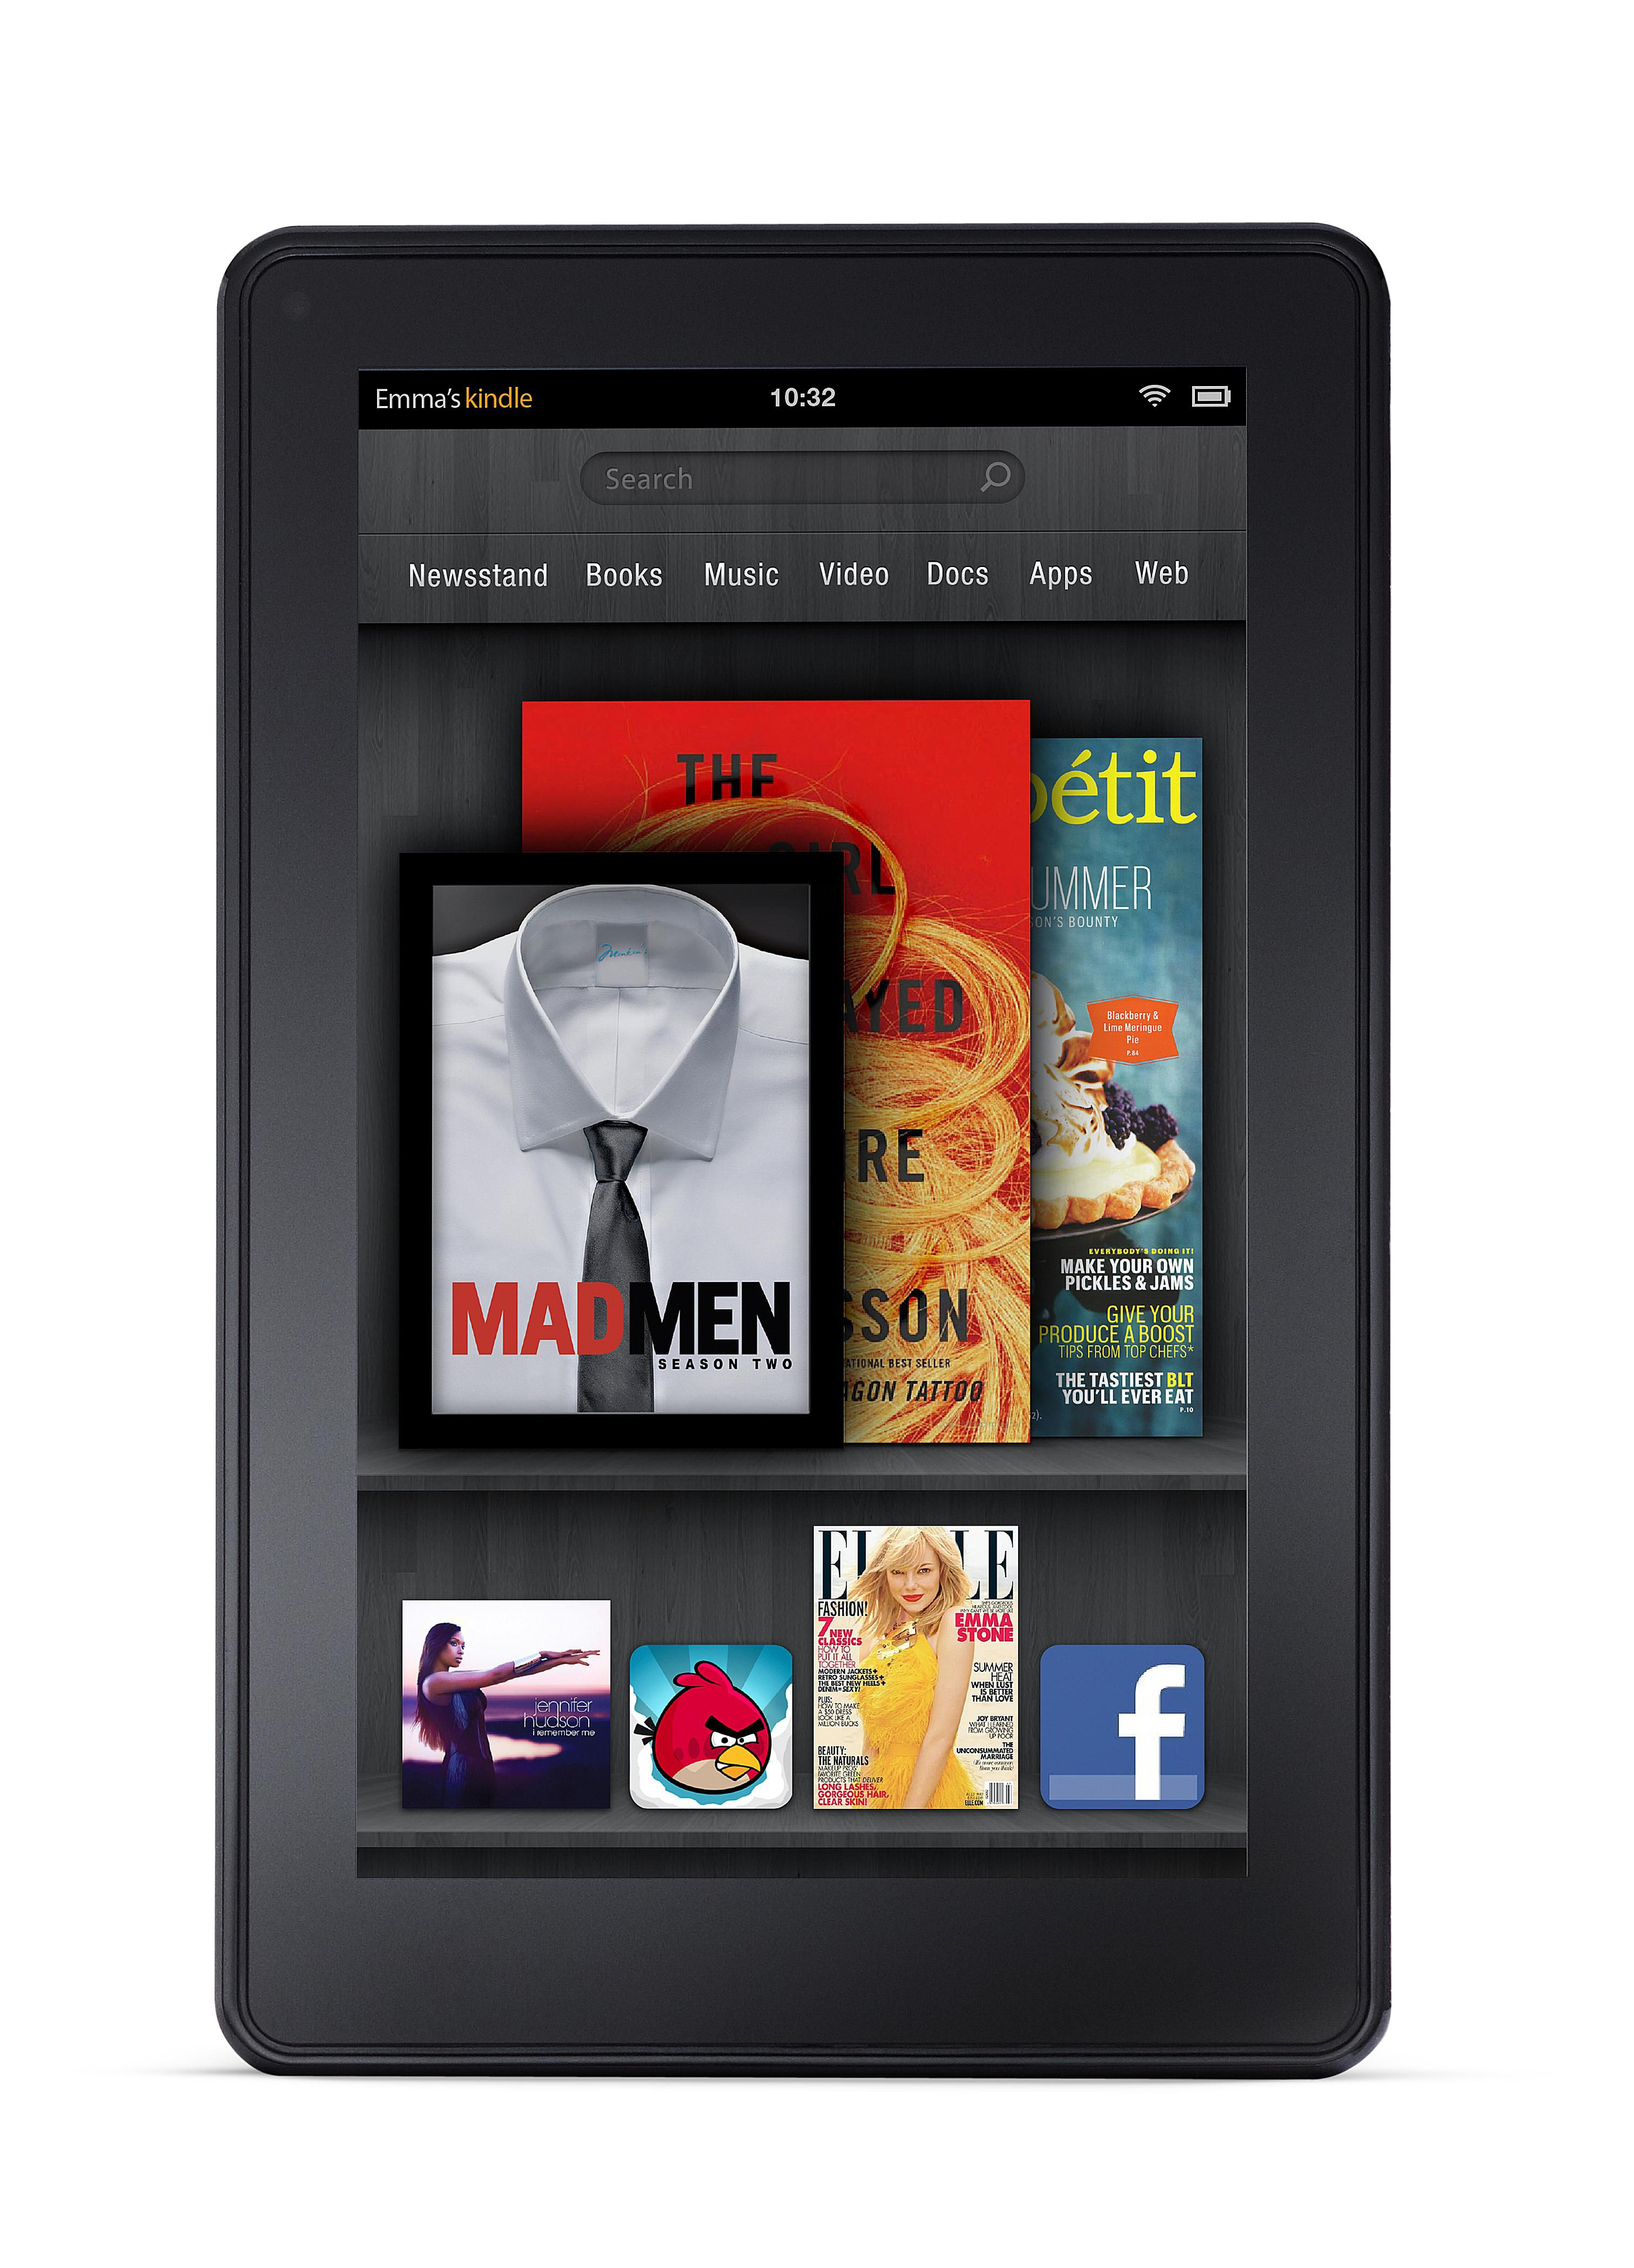 Galaxy Tab Kindle Fire and Nook Tablet Smackdown